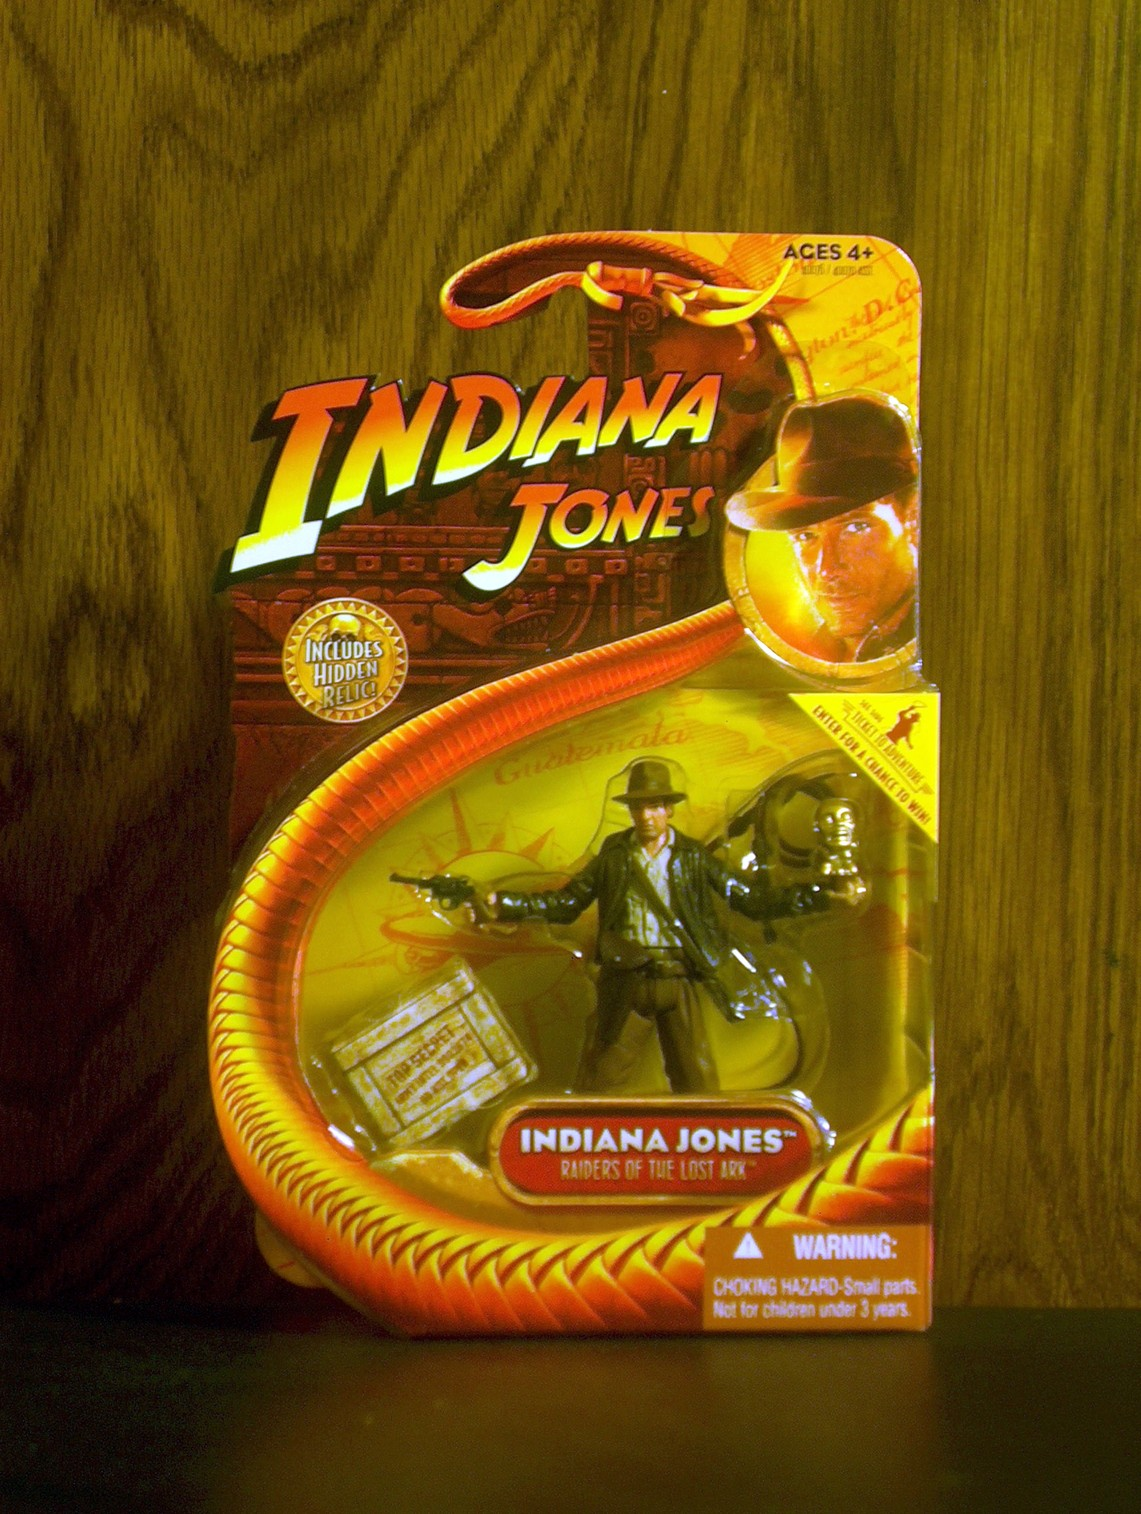 Indiana Jones (with idol)